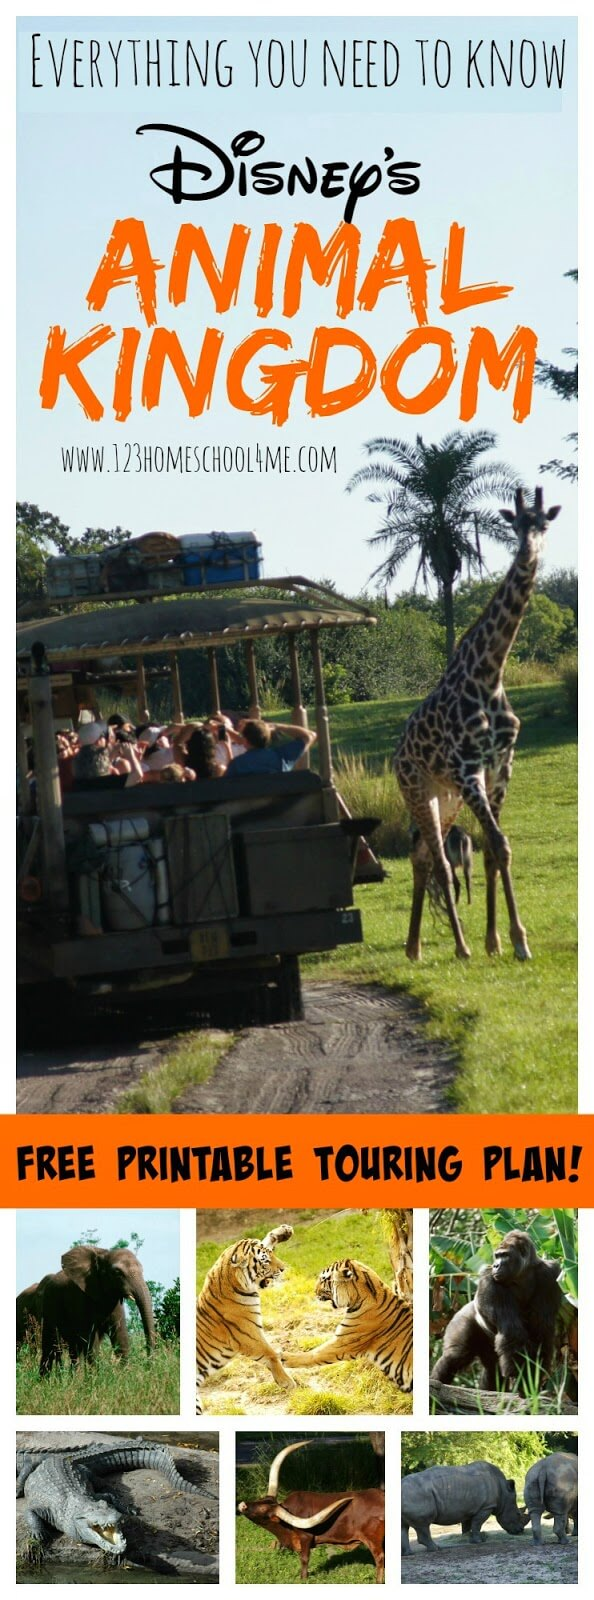 Animal Kingdom - Everything you need to know to plan an amazing disney vacation at Disney World's Animal Kingdom. Includes a free printable trouring plan with suggest order, favorite snacks, height requirements, tidbits, tips and more! #animalkingdom #disneyworld #familyvaction